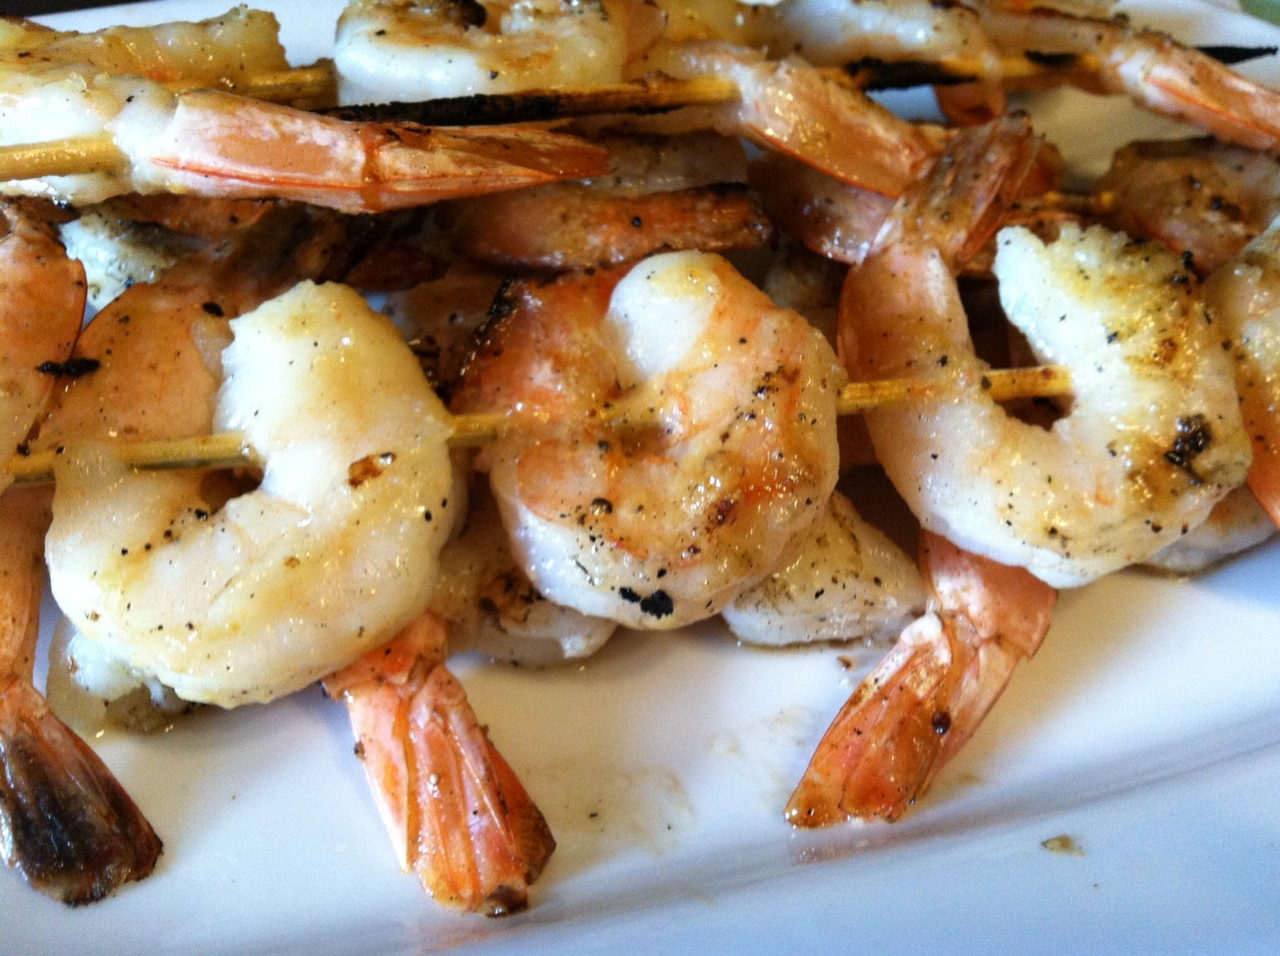 SourdoughNative: Grilled Miso Butter Garlic Shrimp